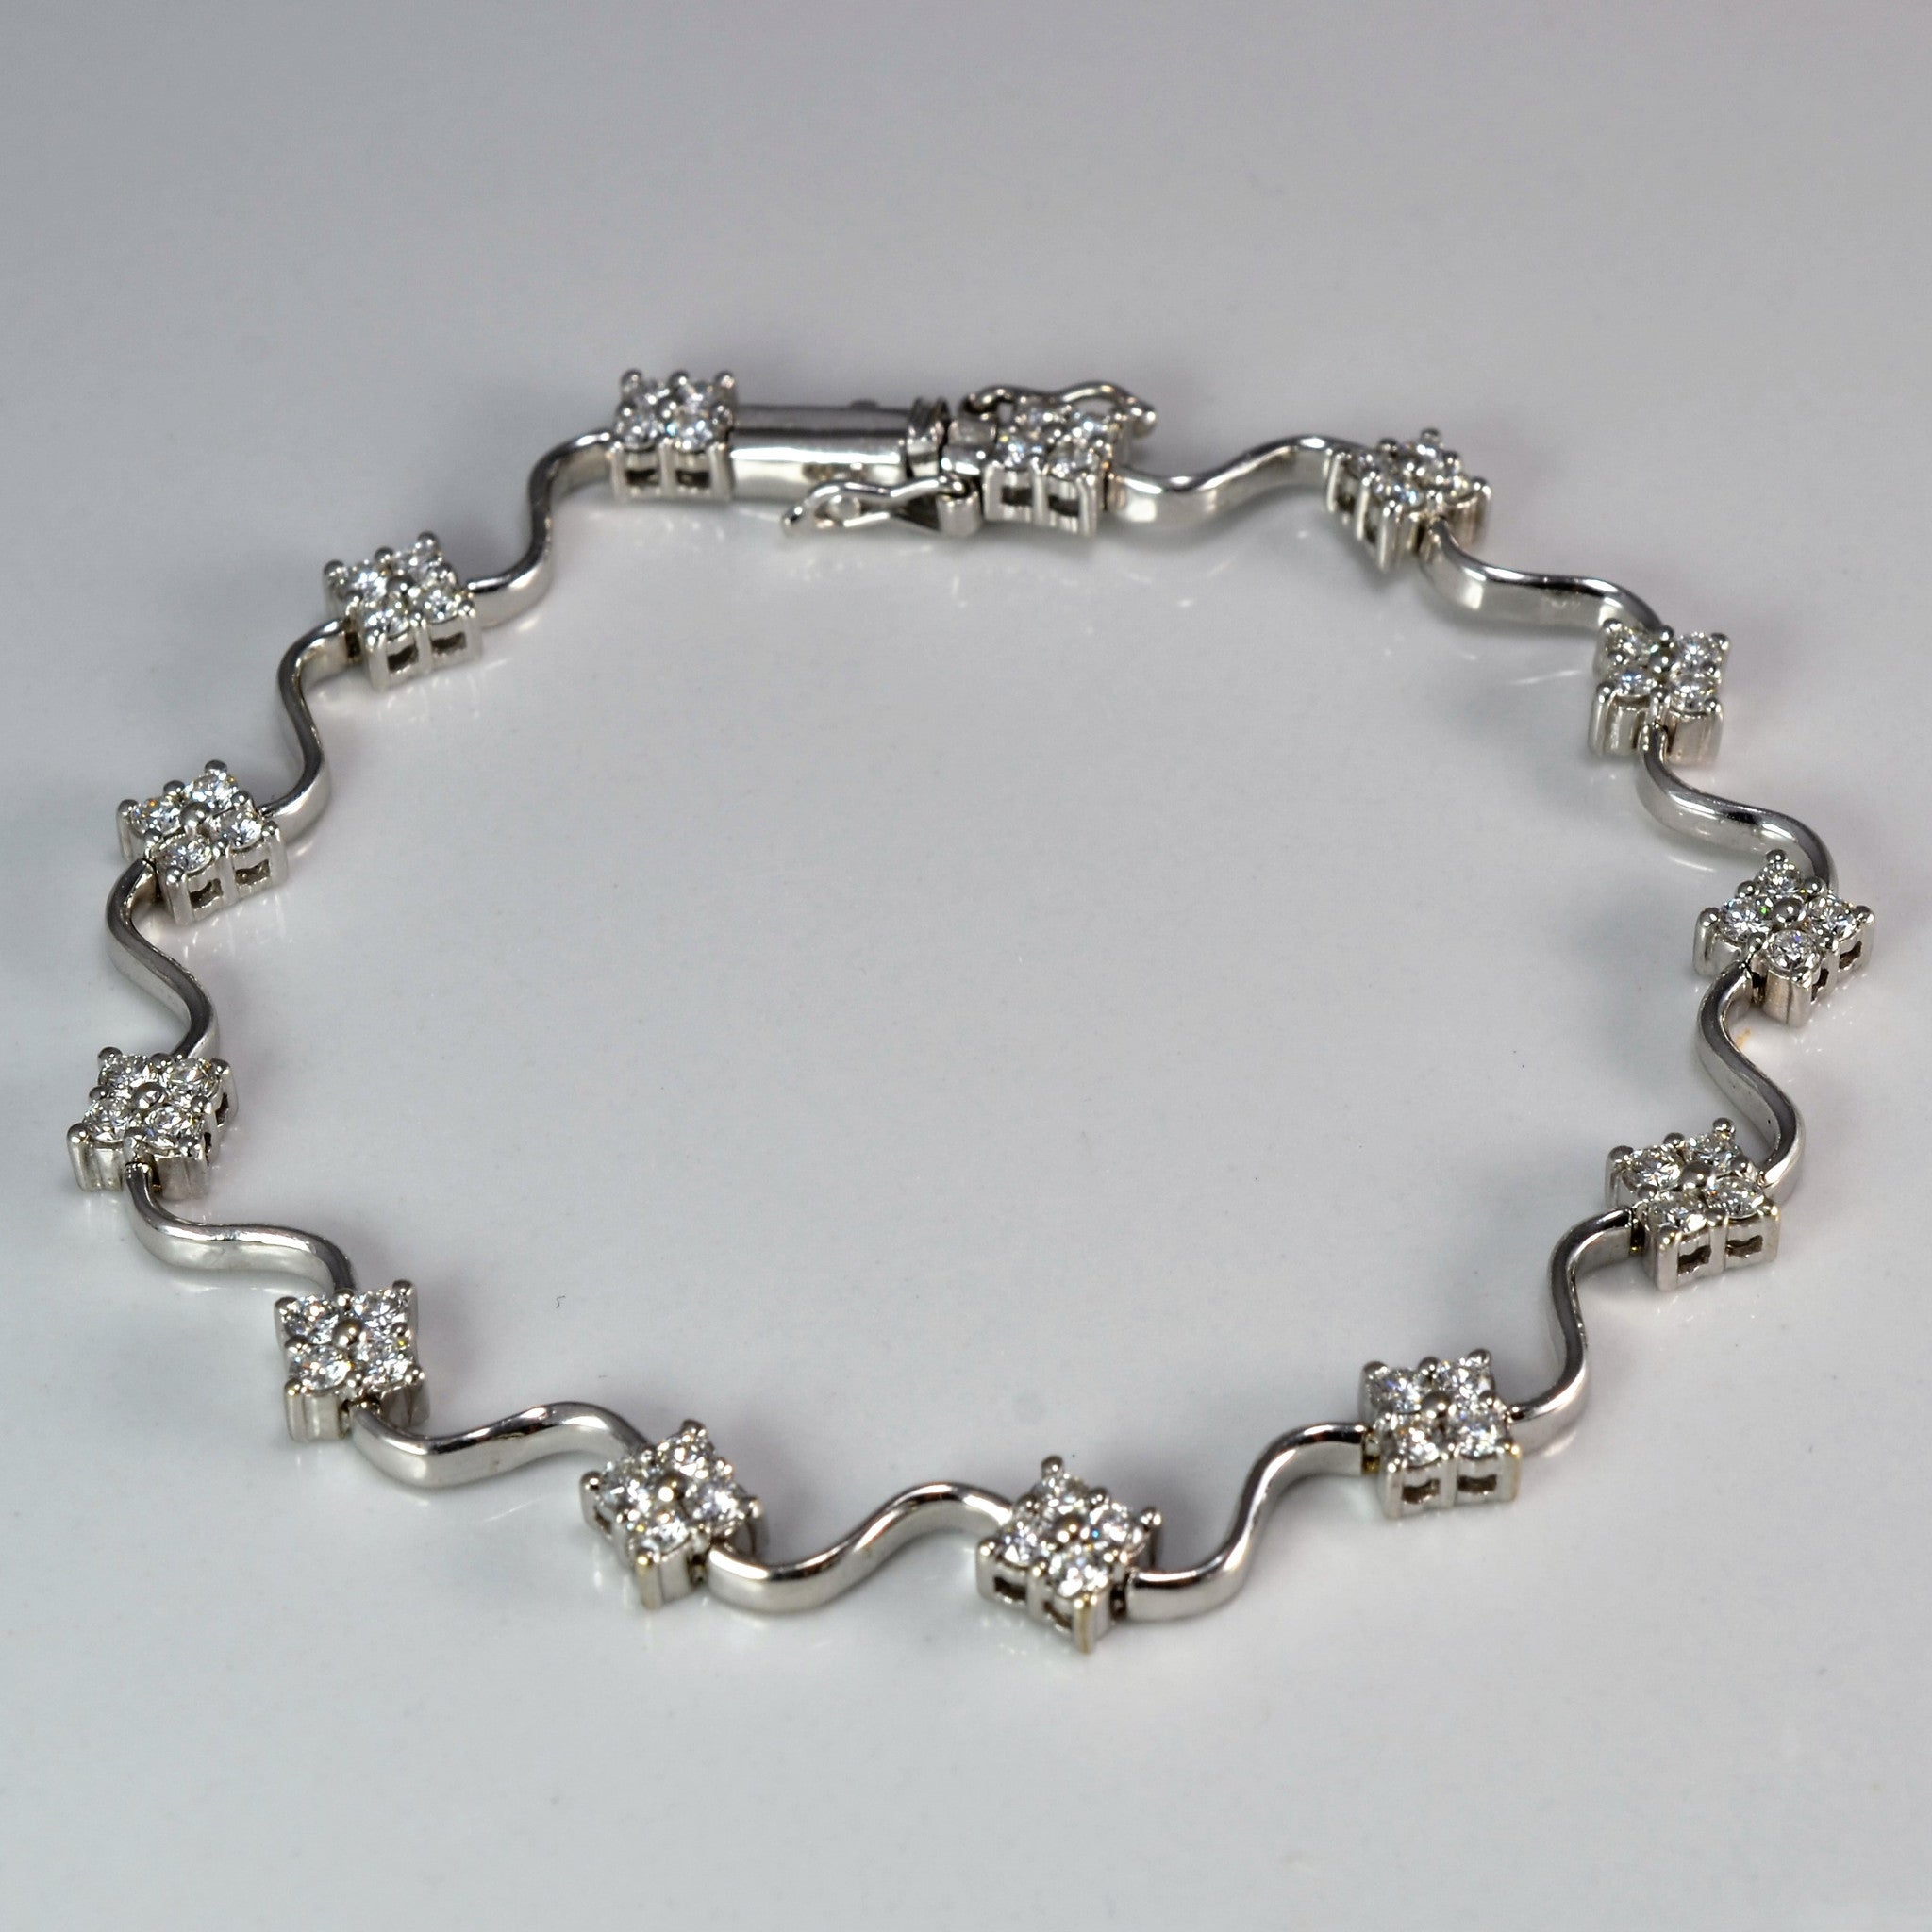 Quad Cluster Diamond Tennis Bracelet | 1.00 ctw, 7"